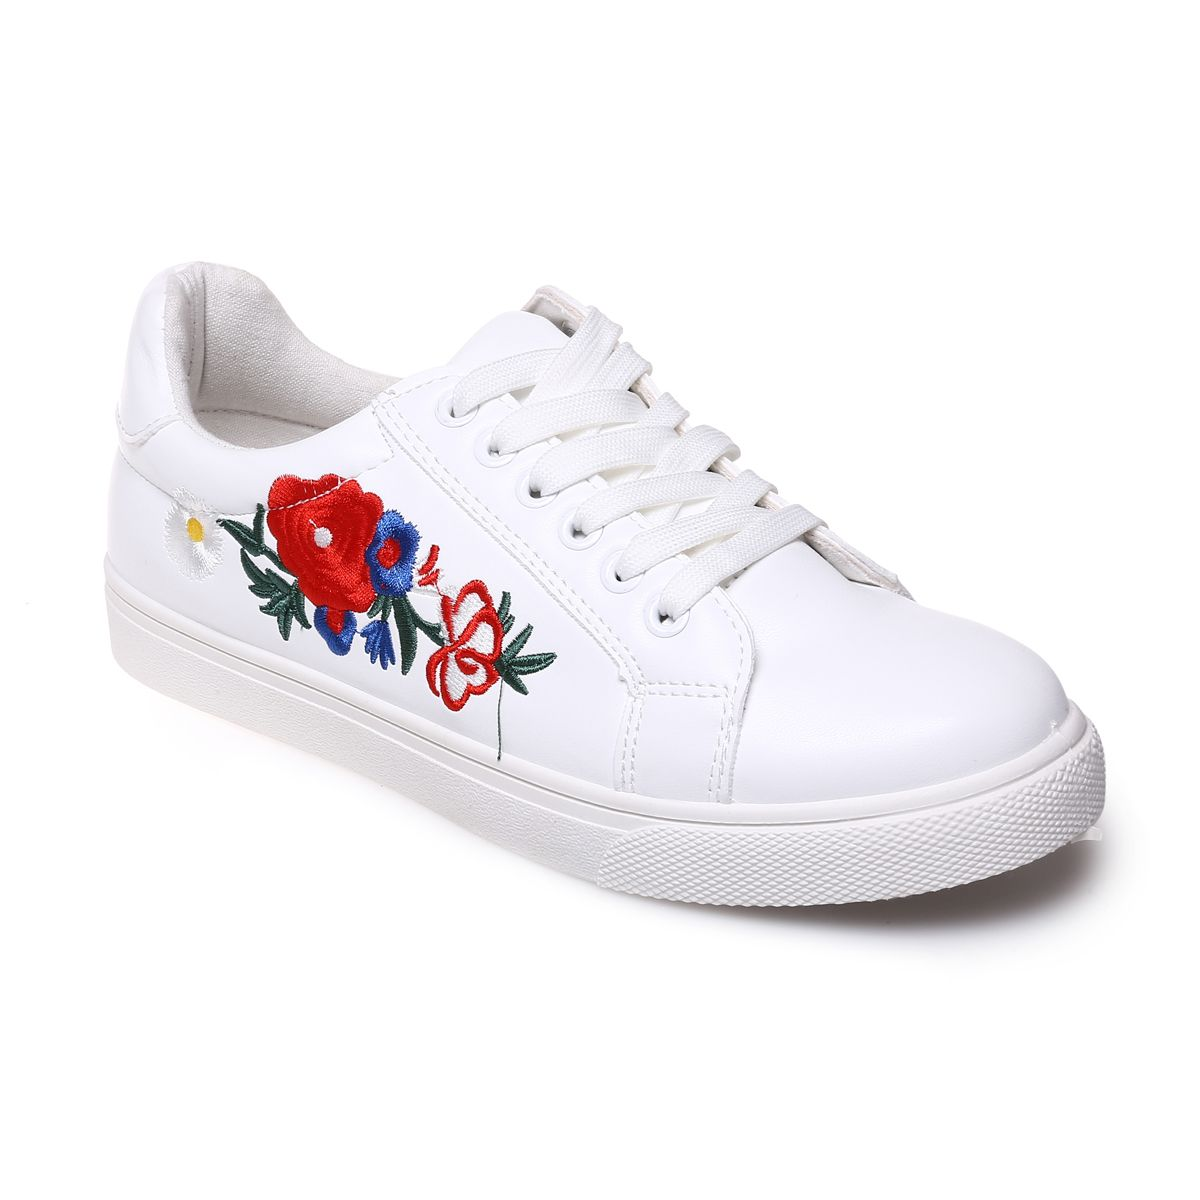 Baskets blanches style cuir avec broderies